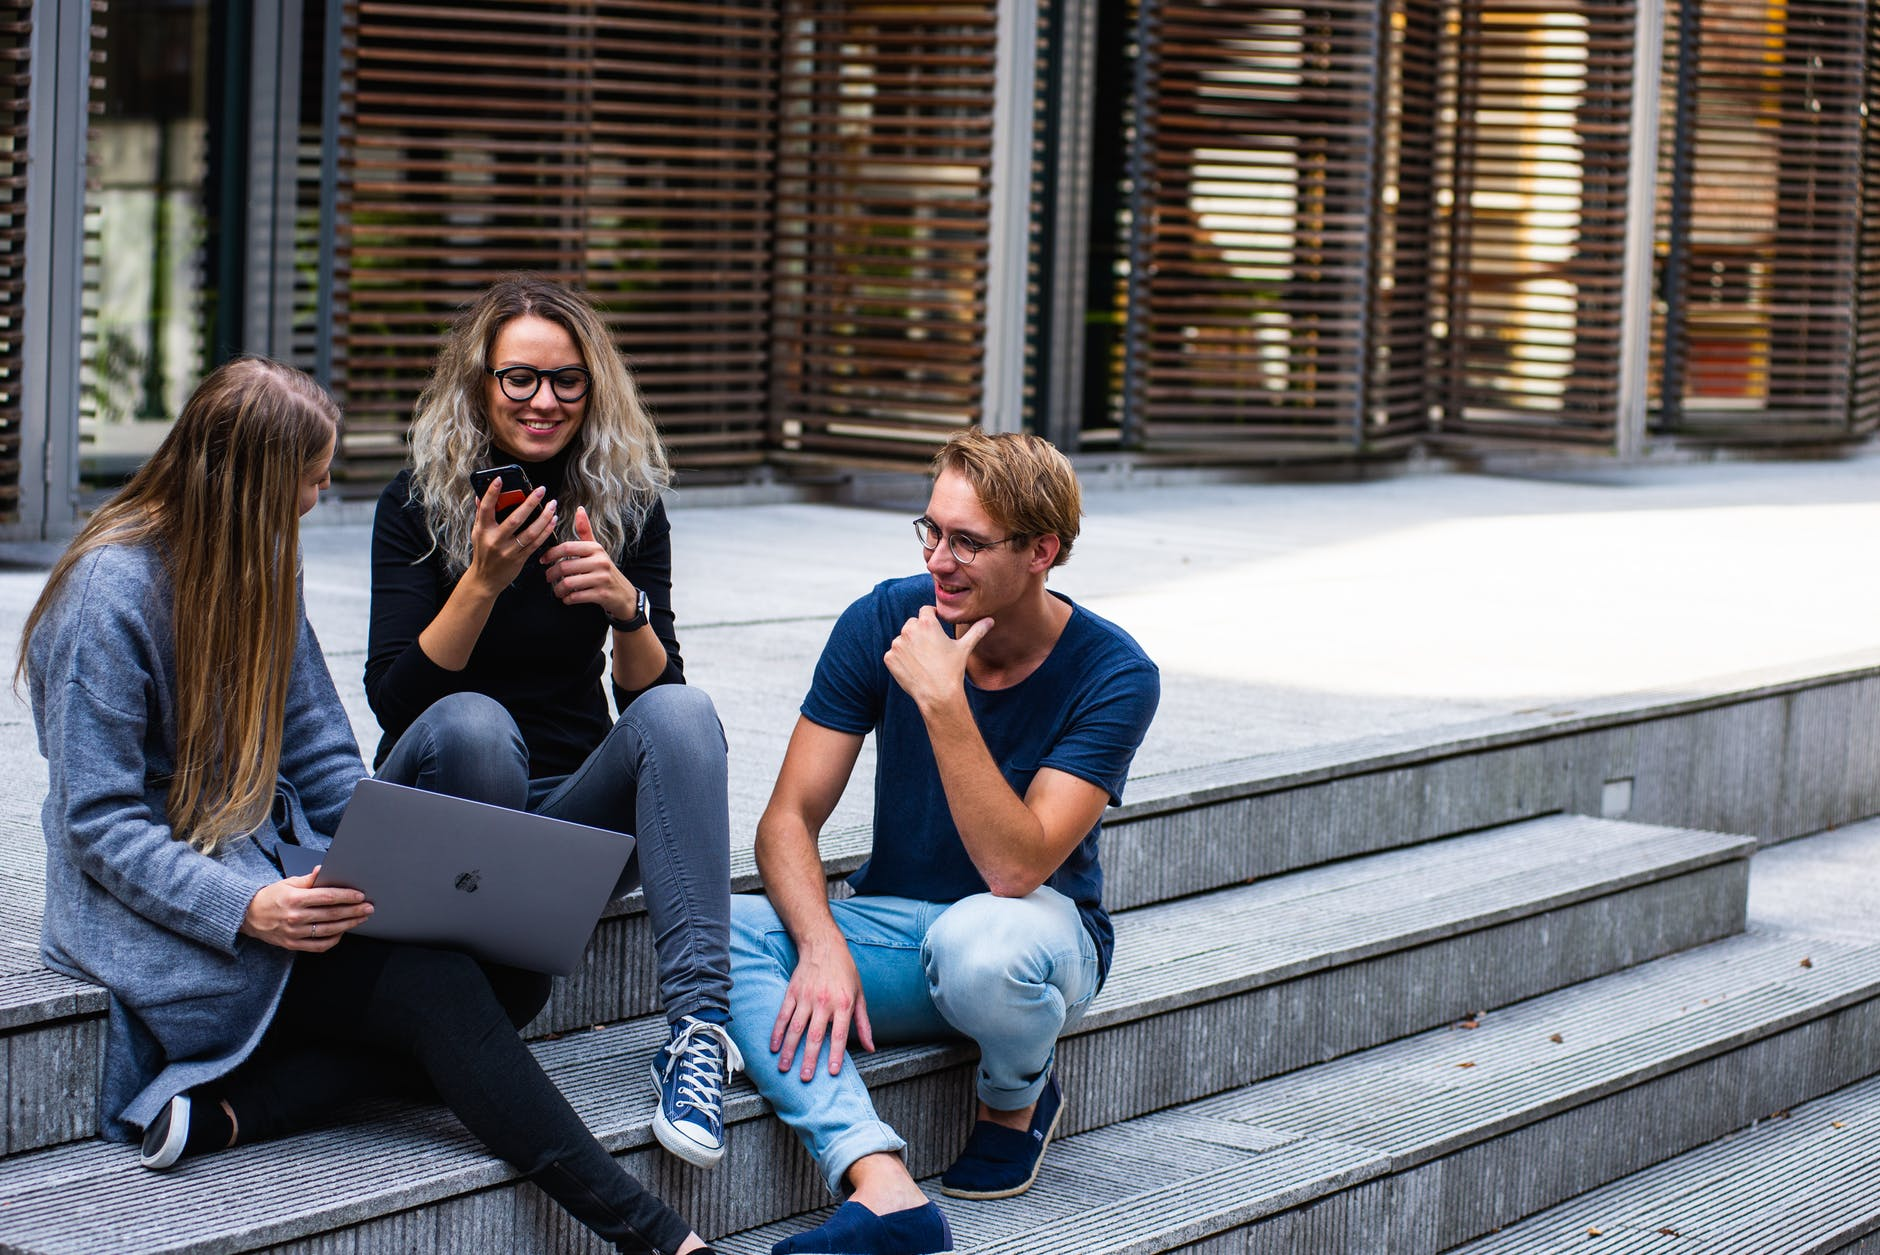 BUSINESS SOLUTIONS – TRAINEESHIPS. DID YOU KNOW?